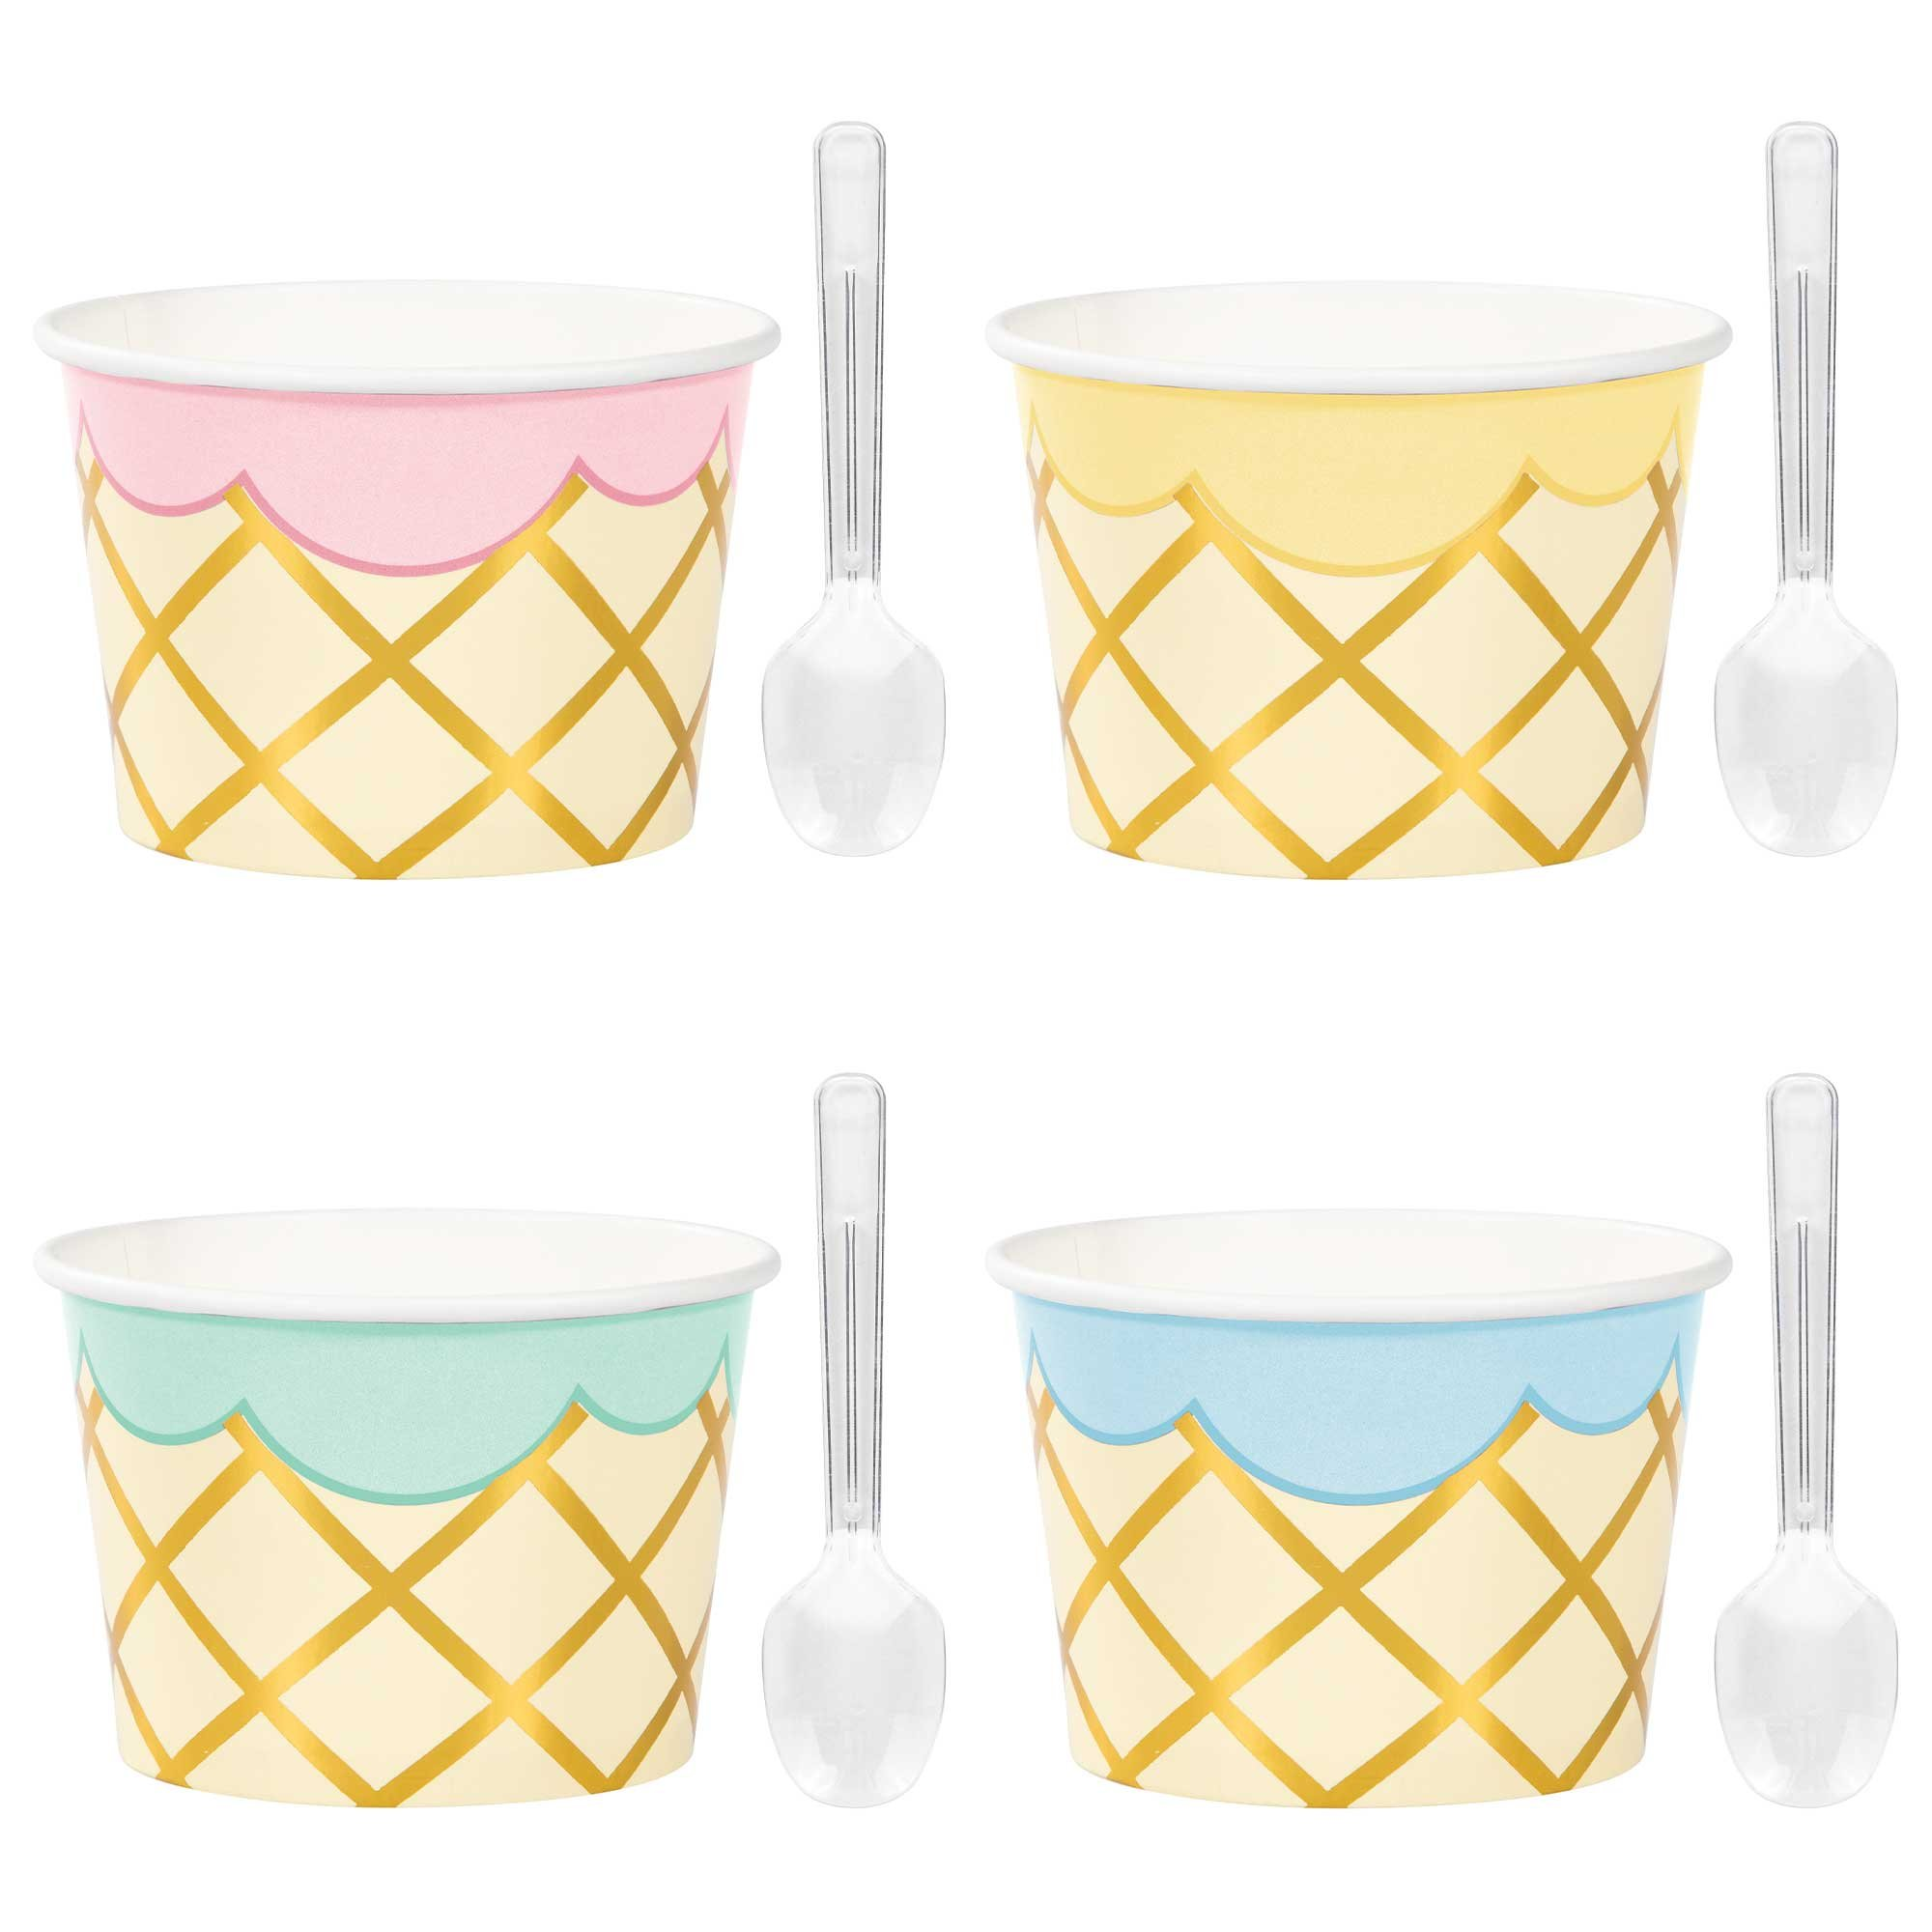 Ice Cream Party Decor Treat Cups Cardboard & Foil & Clear Plastic Spoons